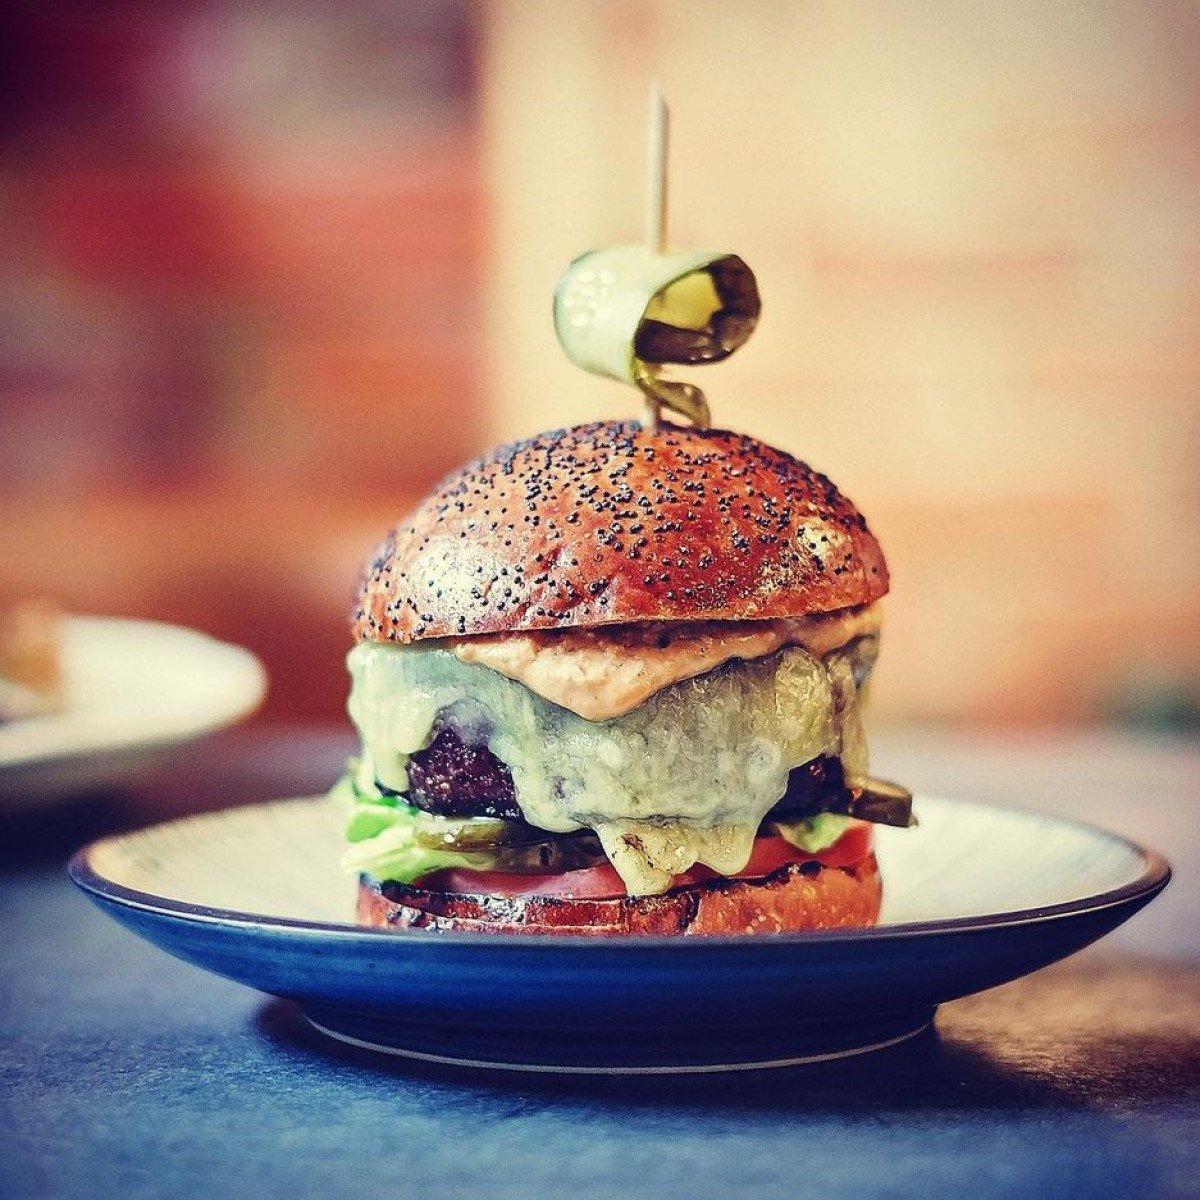 The Crockers Burger from The Charcol Grill at Crockers Henley